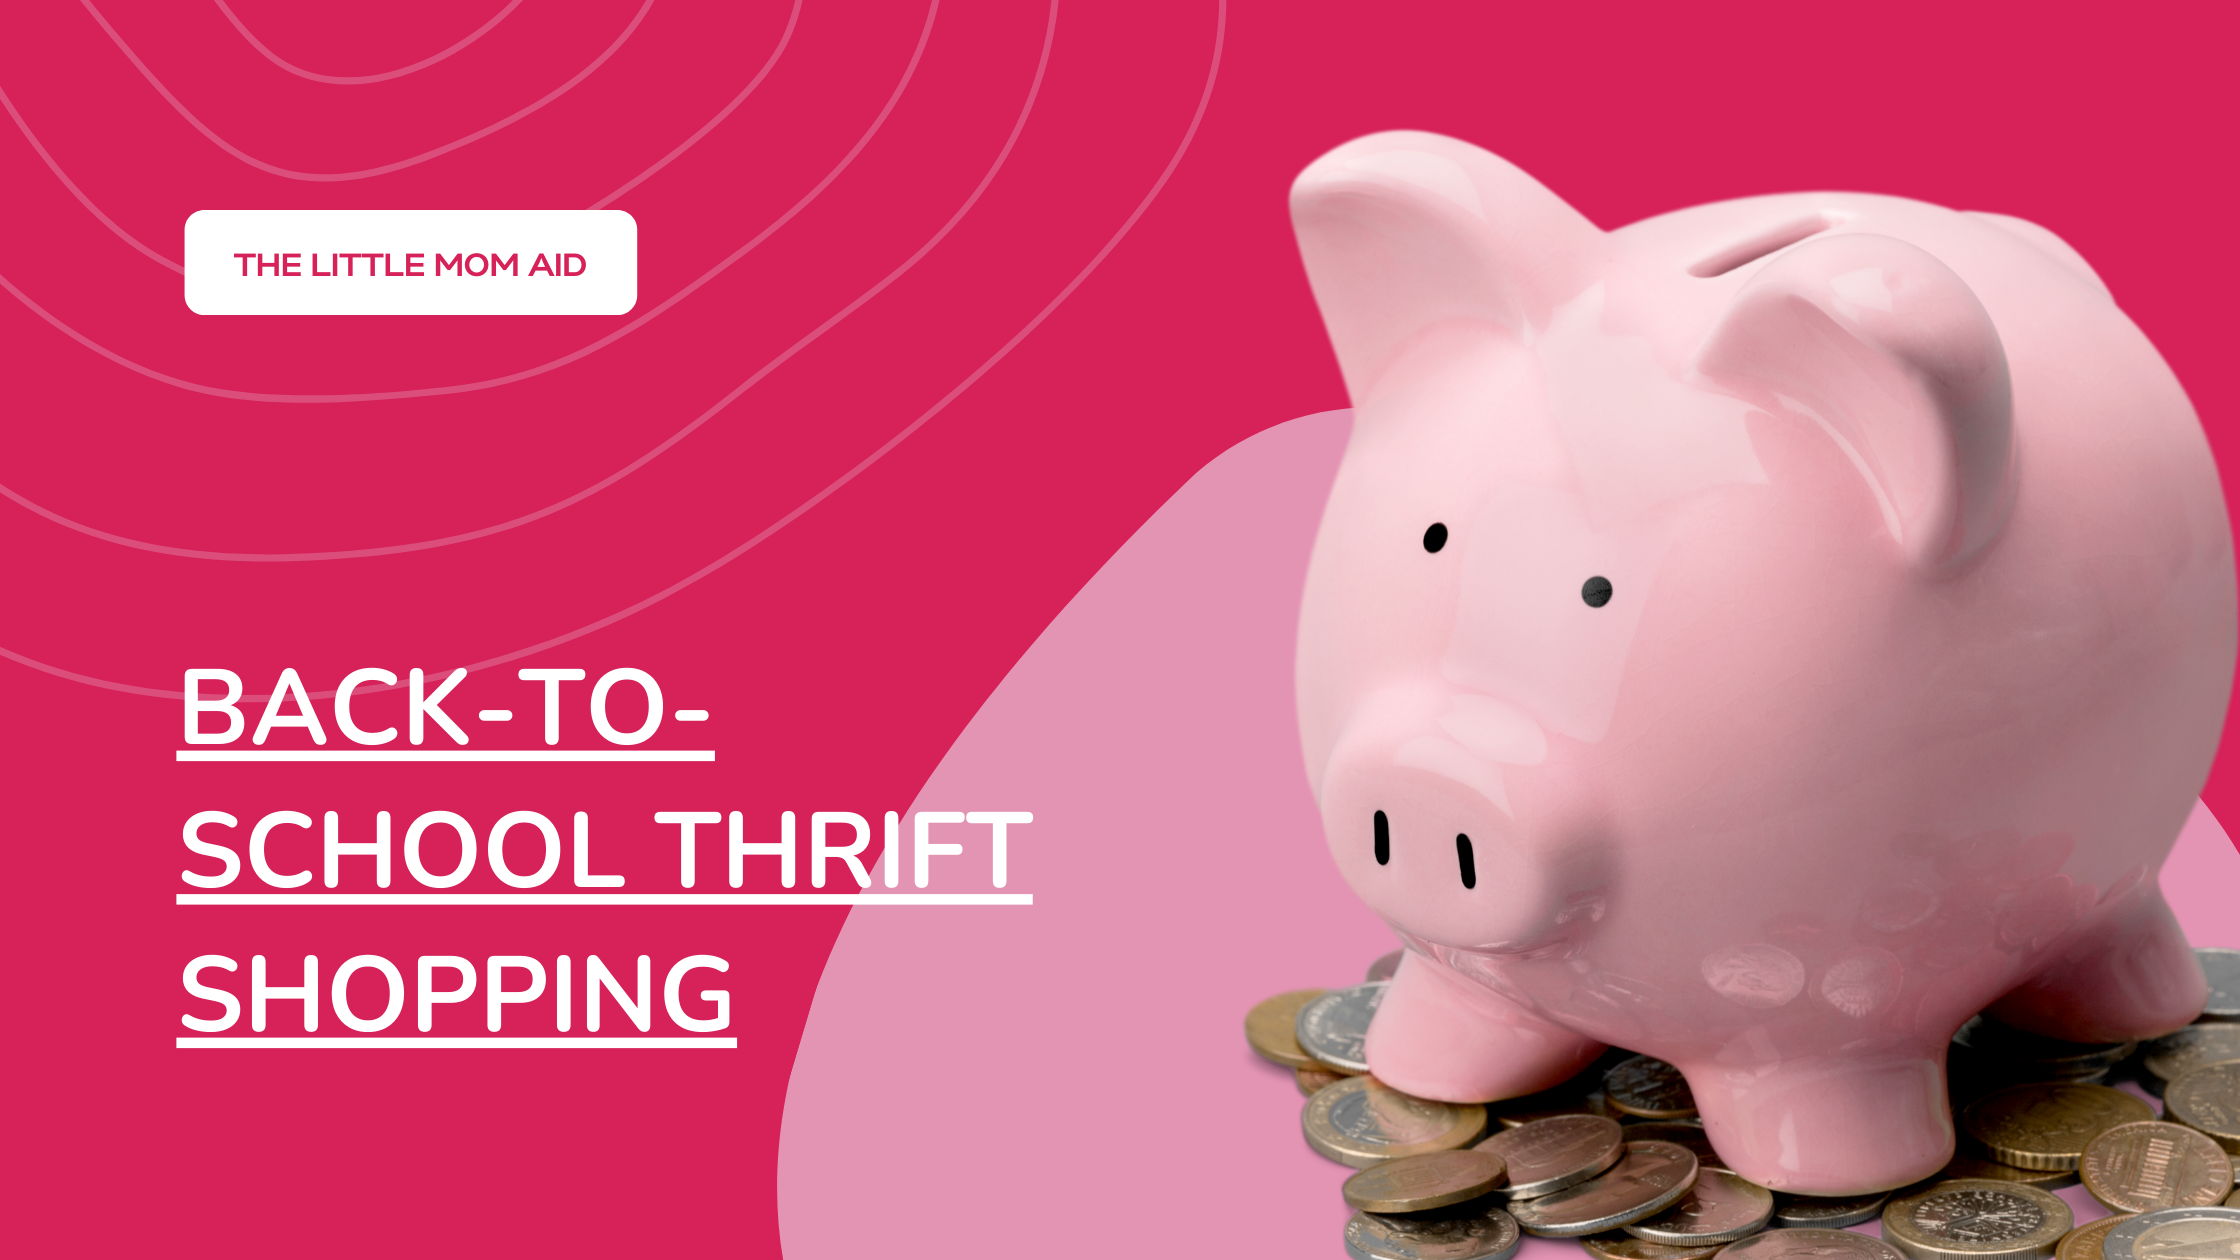 Save money this year by going to thrift stores for your back-to-school shopping